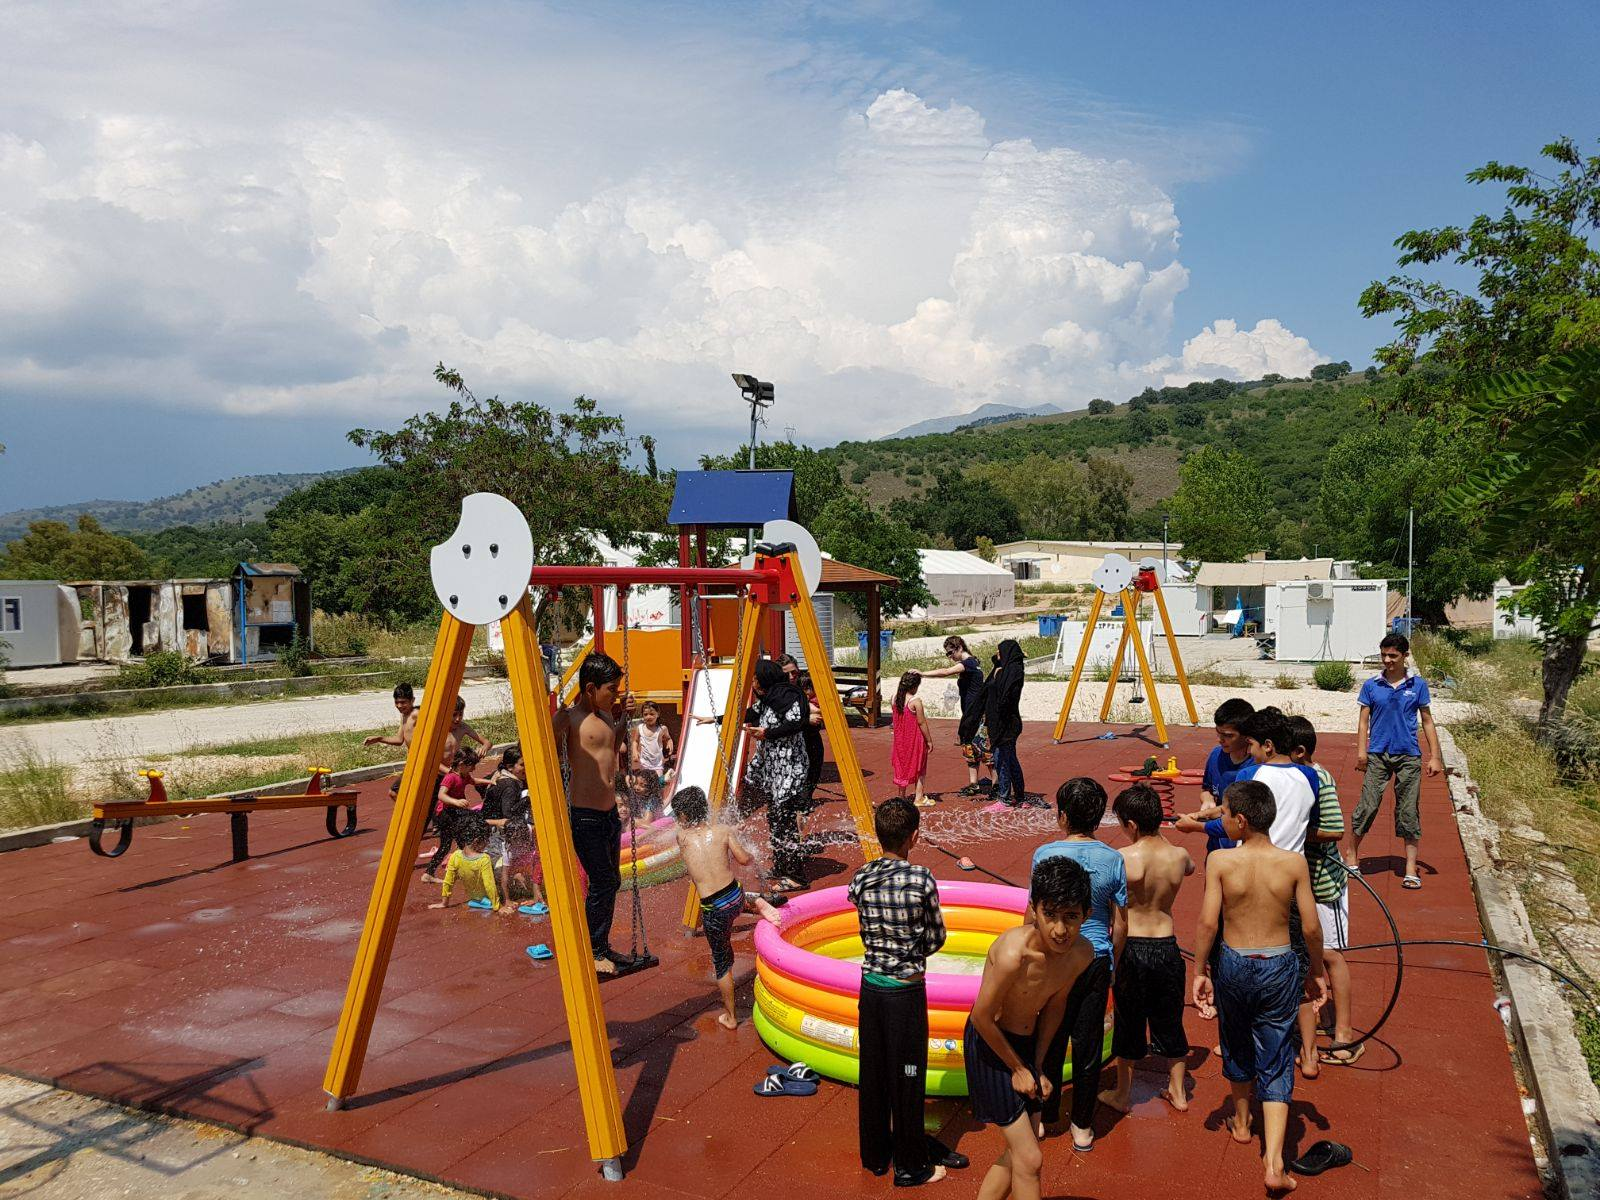 On the Ground: A Children's Playground